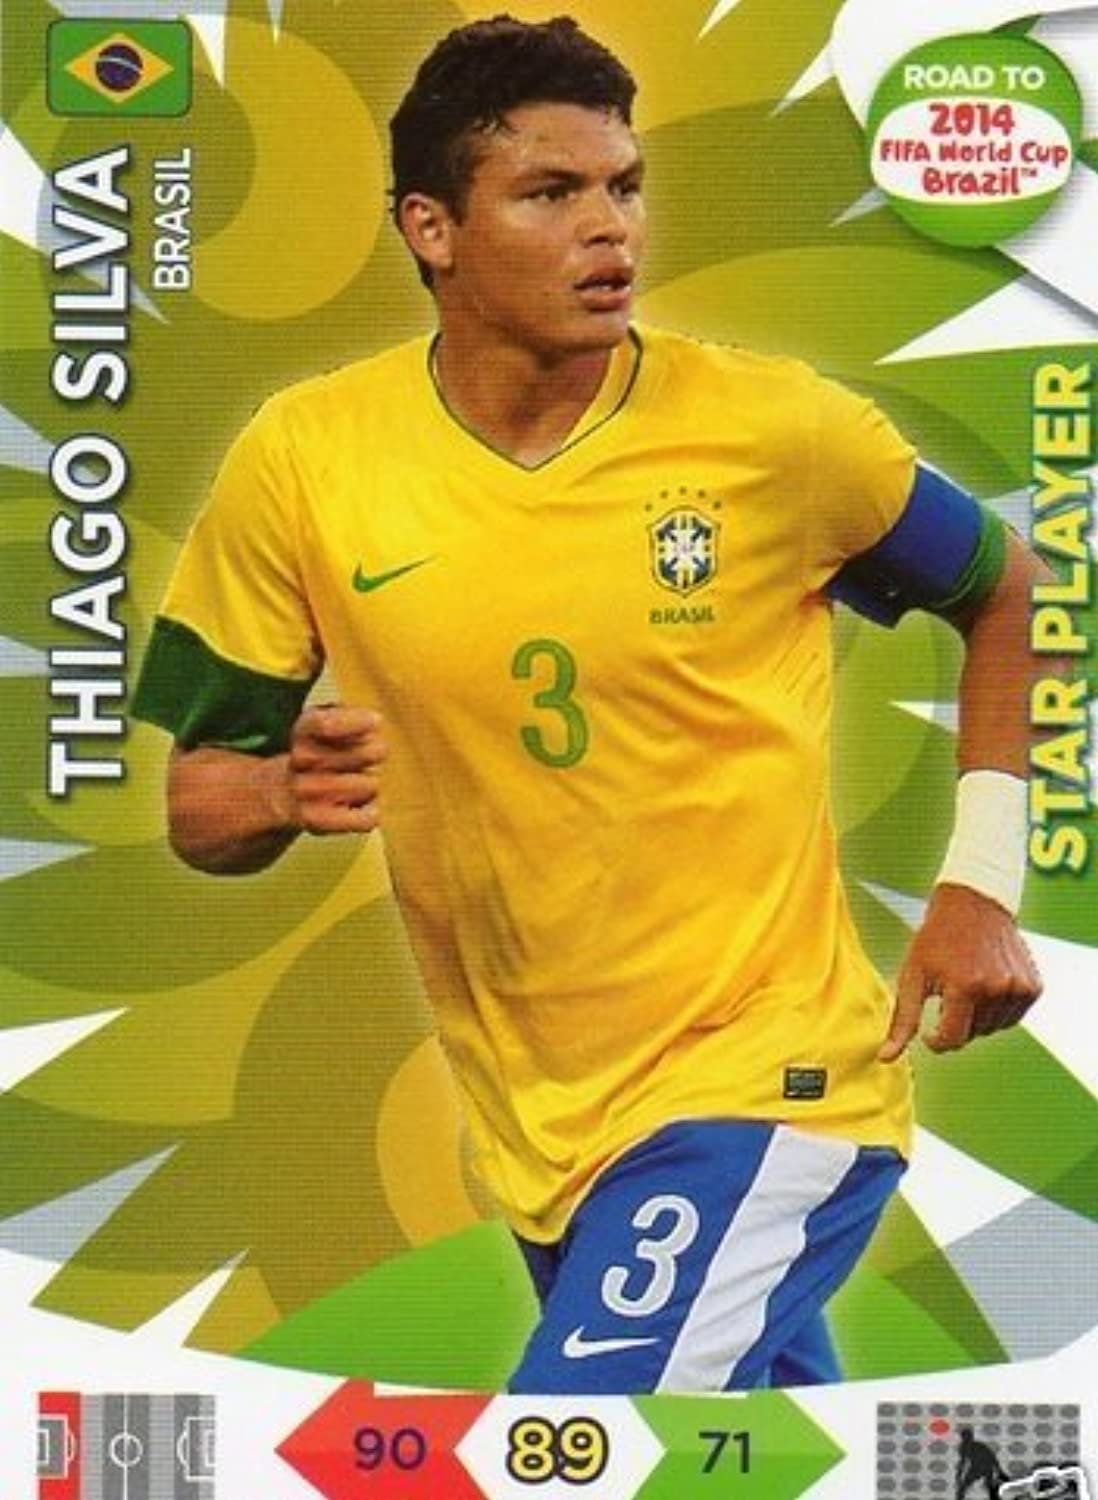 Adrenalyn XL Road To 2014 World Cup Brazil 16 Thiago Silva Star Player